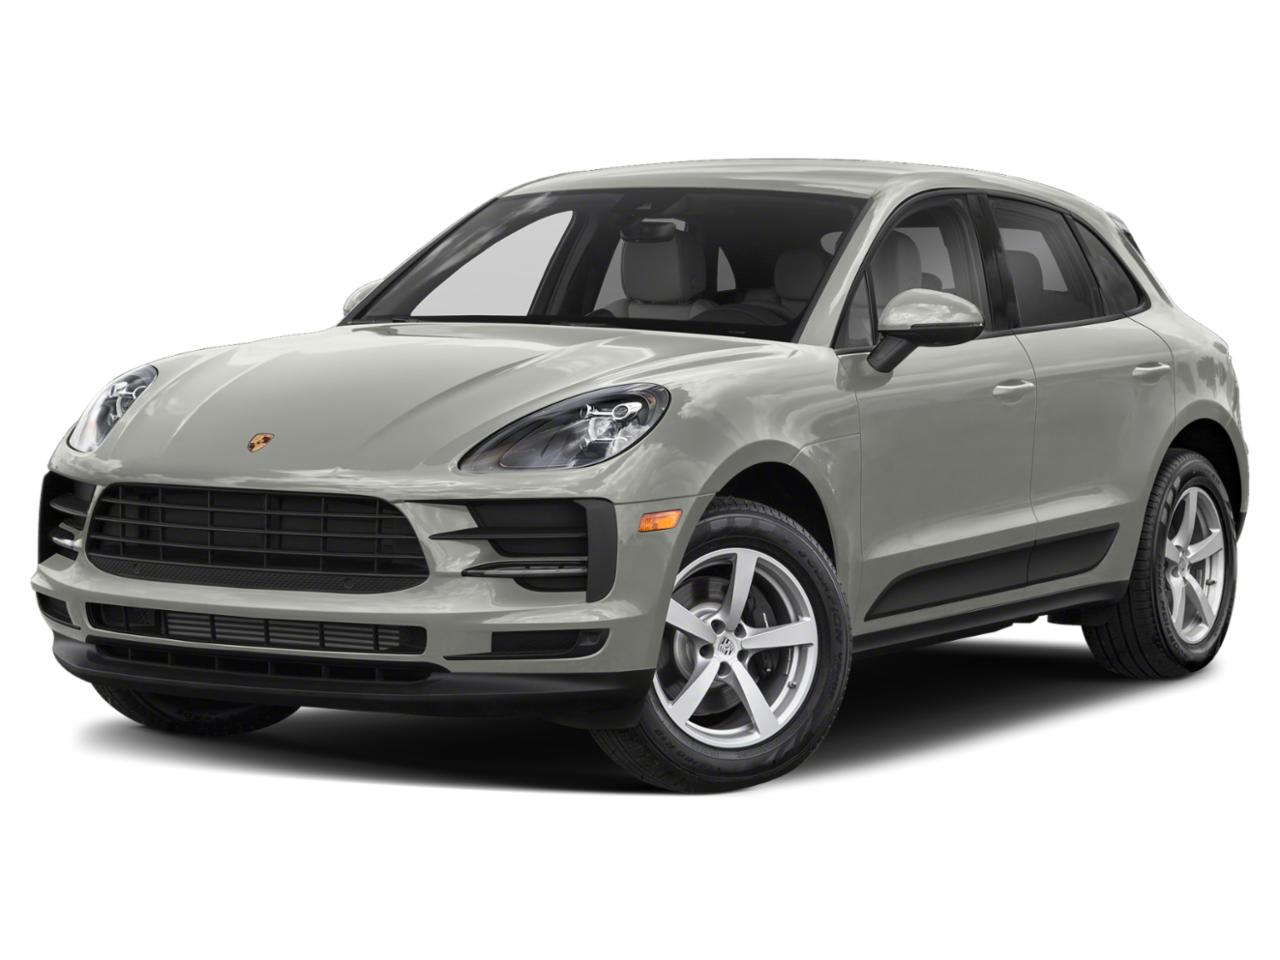 2021 Porsche Macan Vehicle Photo in Littleton, CO 80121